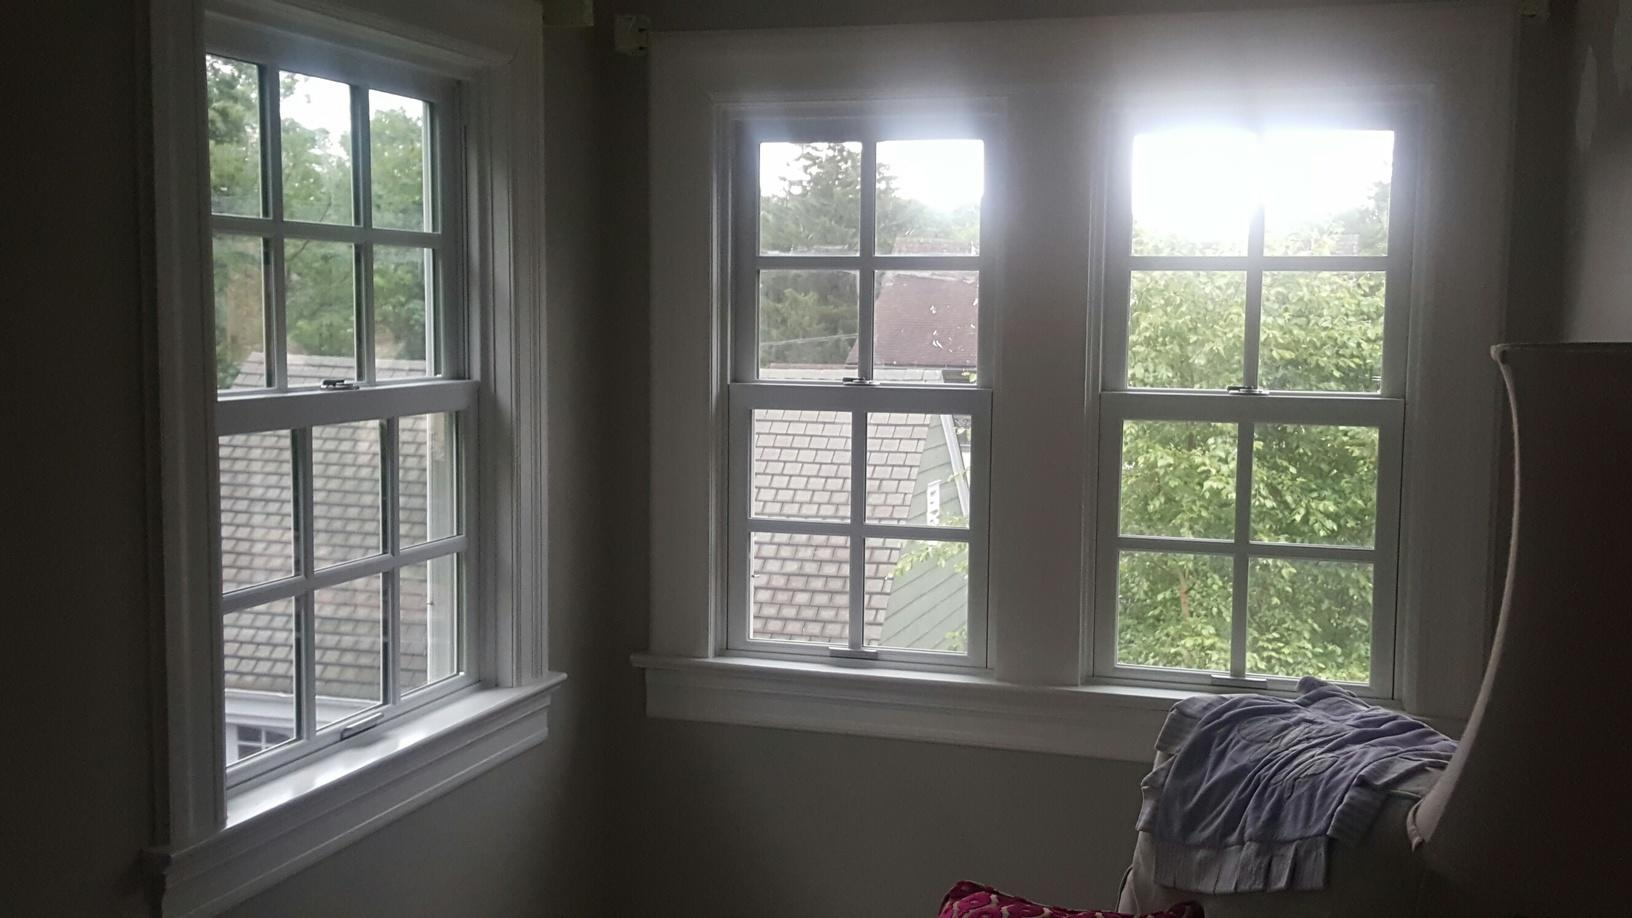 Replacing Sunroom's Wooden Double Hung Windows with Marvin Infinity Fiberglass Windows in Ridgewood, NJ - After Photo